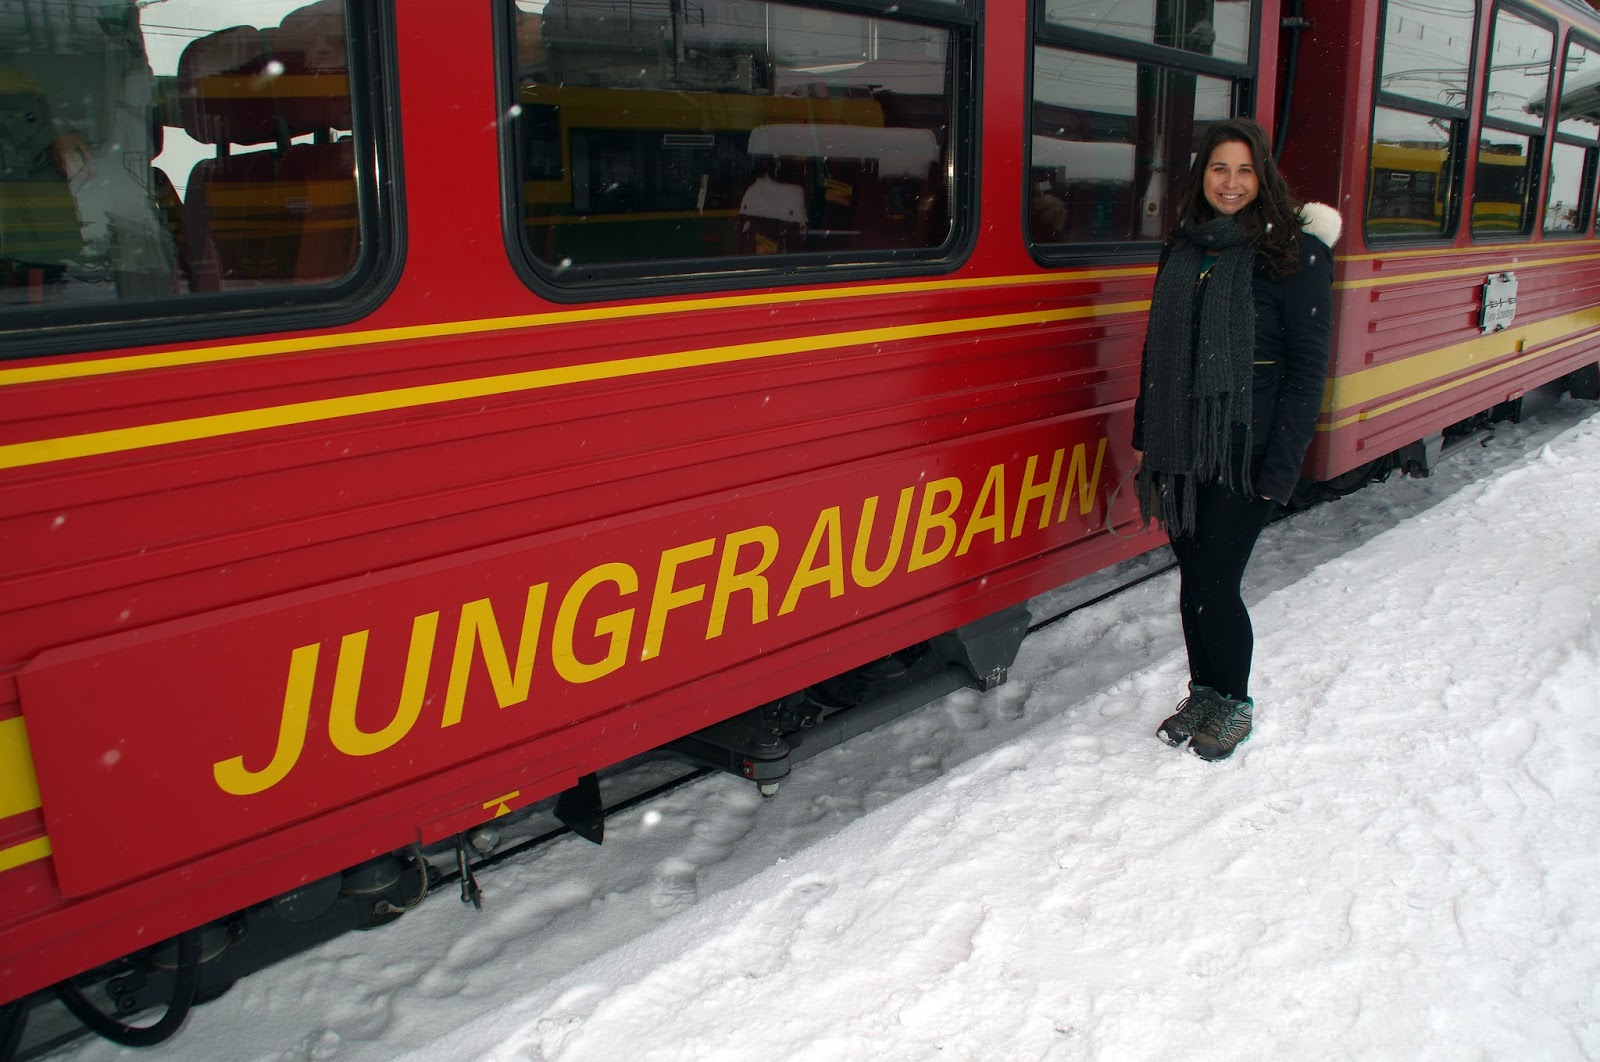 Jungfraujoch Train